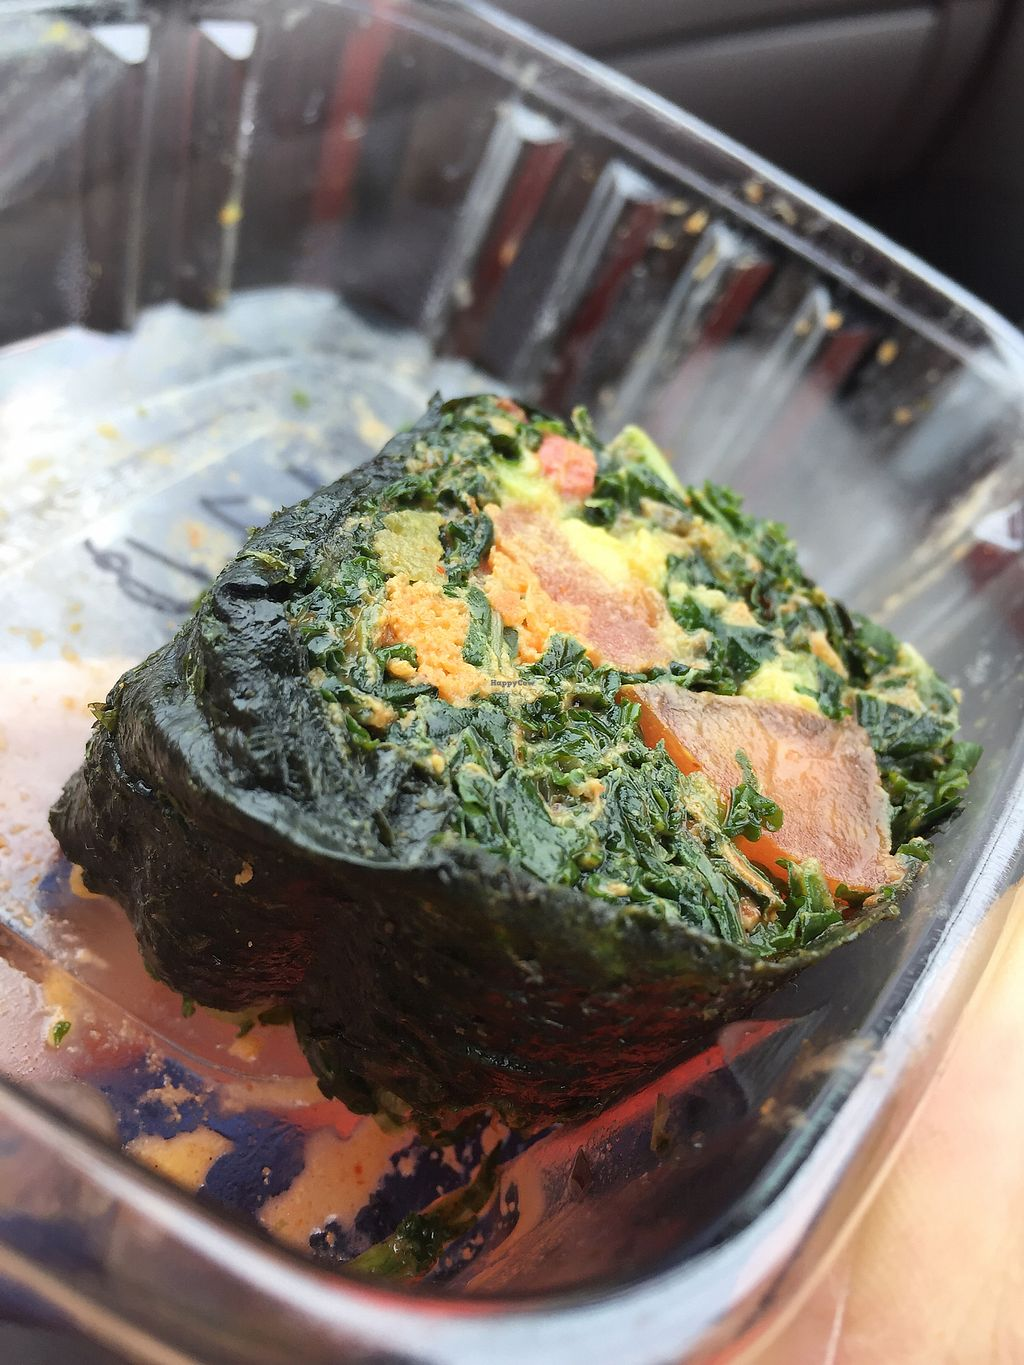 """Photo of Tassili's Raw Reality  by <a href=""""/members/profile/jfree"""">jfree</a> <br/>A piece of carrot tuna kale sushi <br/> January 8, 2018  - <a href='/contact/abuse/image/29830/344484'>Report</a>"""